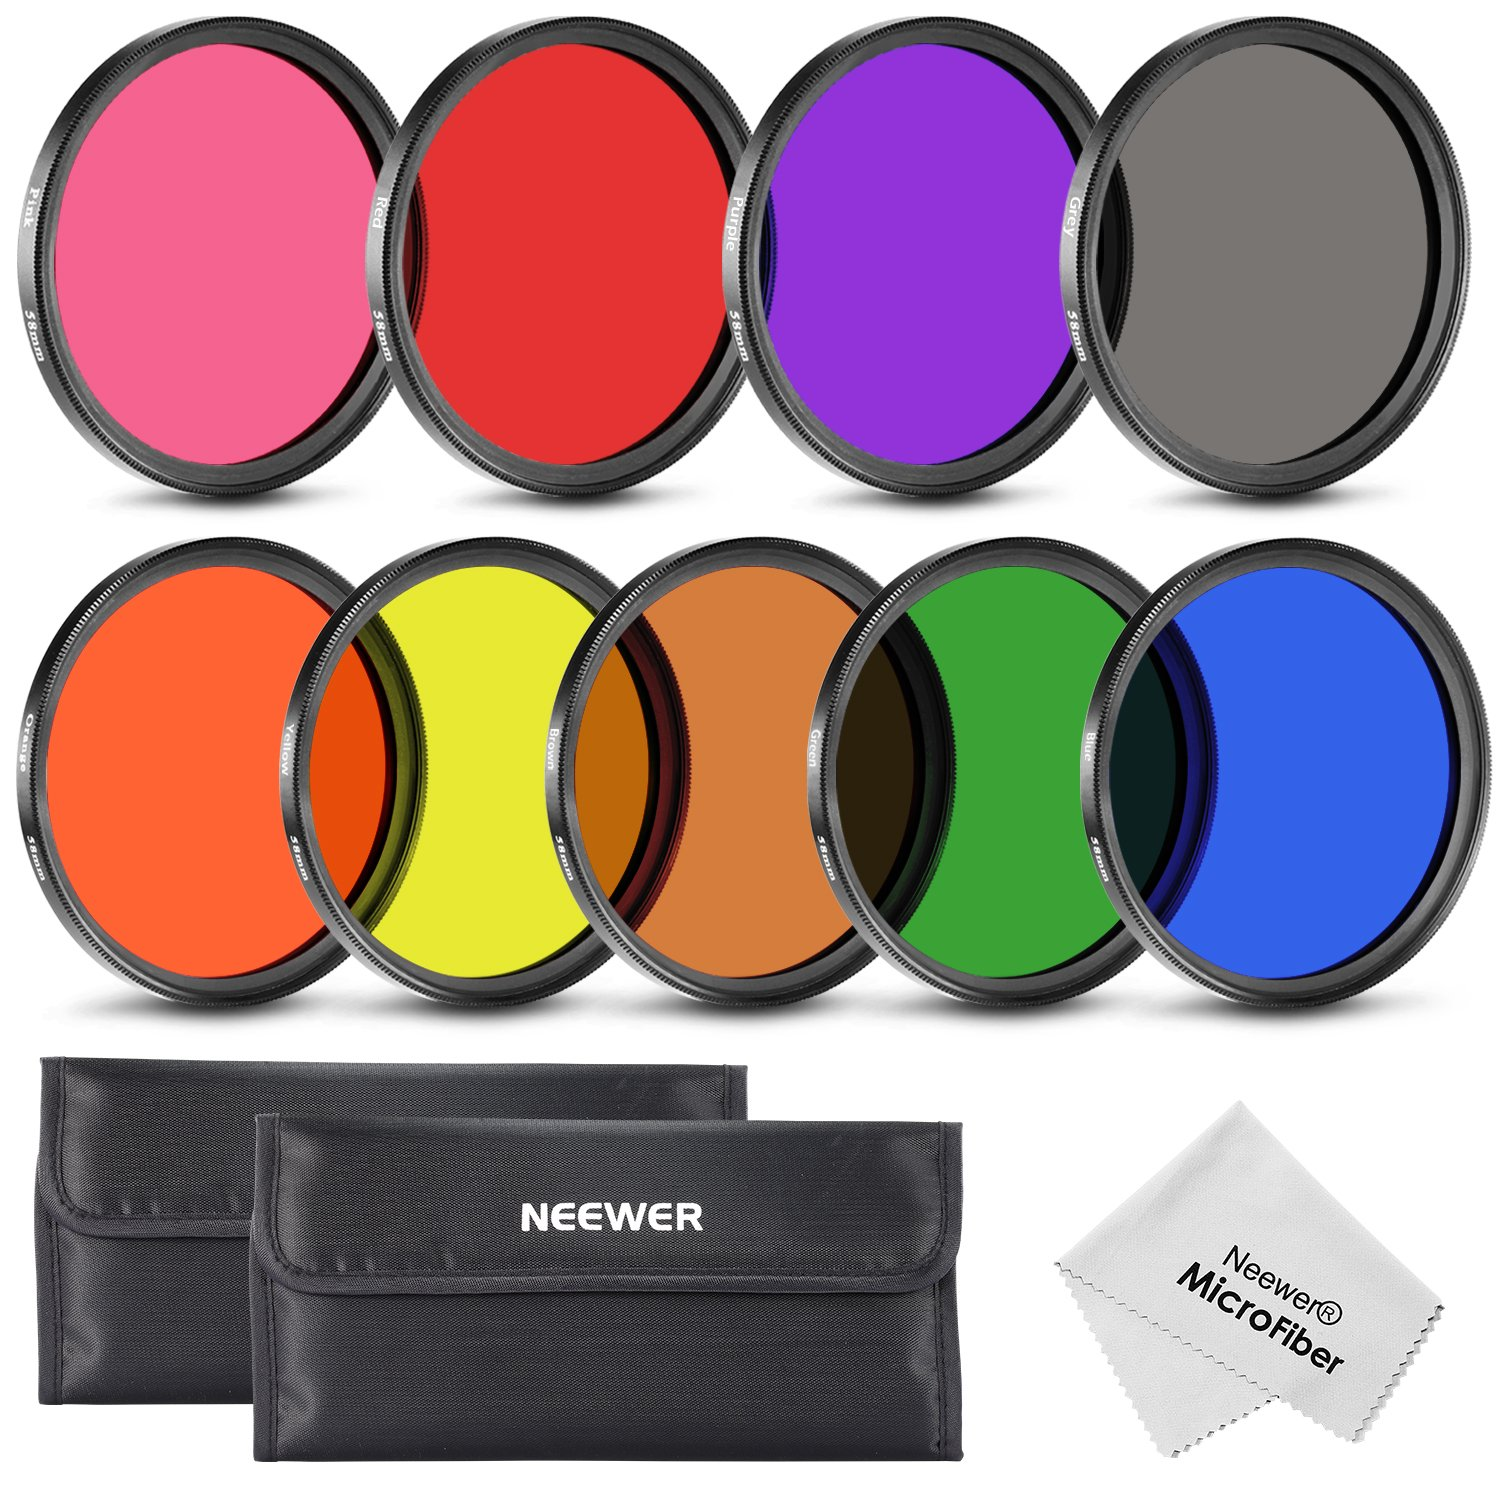 Neewer 58MM Complete Full Color Lens Filter Set (9pcs) for Camera Lens with 58MM Filter Thread - Includes: Red, Orange, Blue, Yellow, Green, Brown, Purple, Pink and Gray ND Filters + Filter Carry Pounch + Microfiber Lens Cleaning Cloth by Neewer